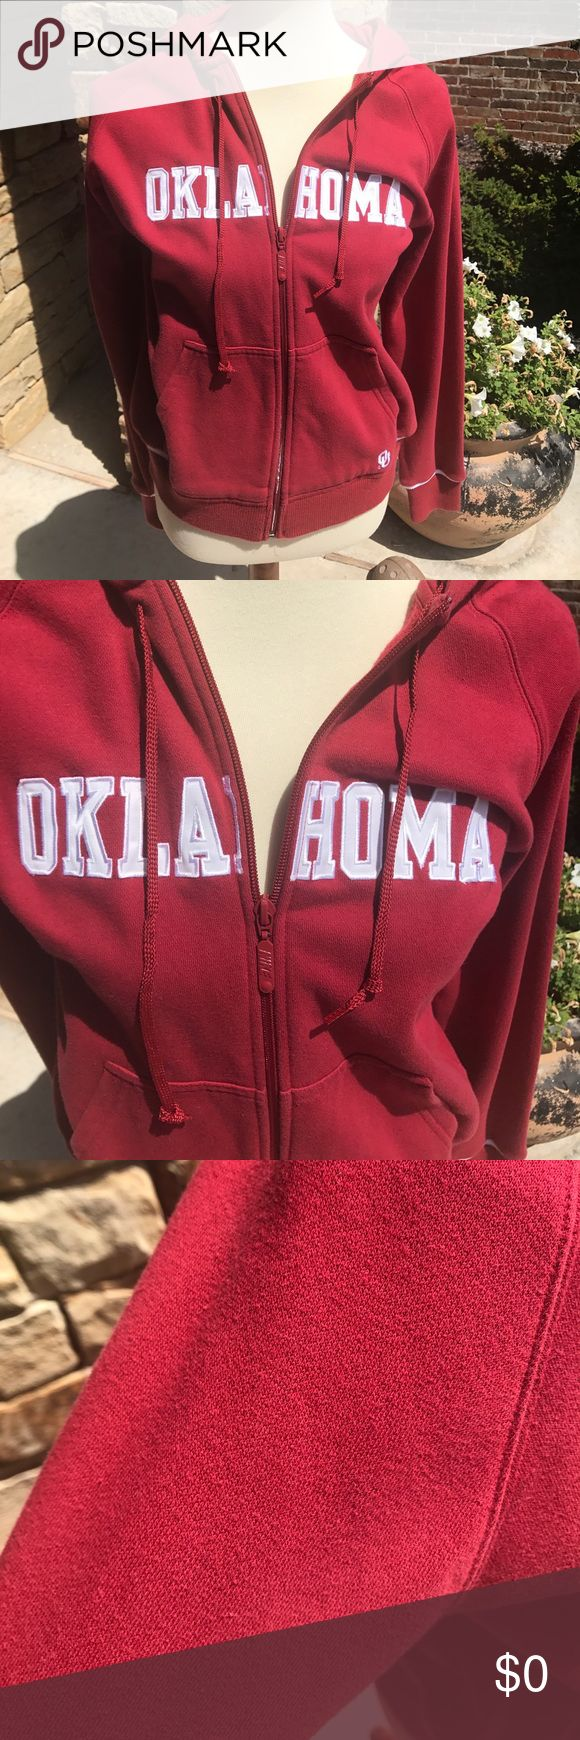 Boomer Sooner! Women's Nike zip up hoodie with Oklahoma stitched across chest. White stripe at bottom of hoodie and sleeves. Light wear and piling. Nike Tops Sweatshirts & Hoodies